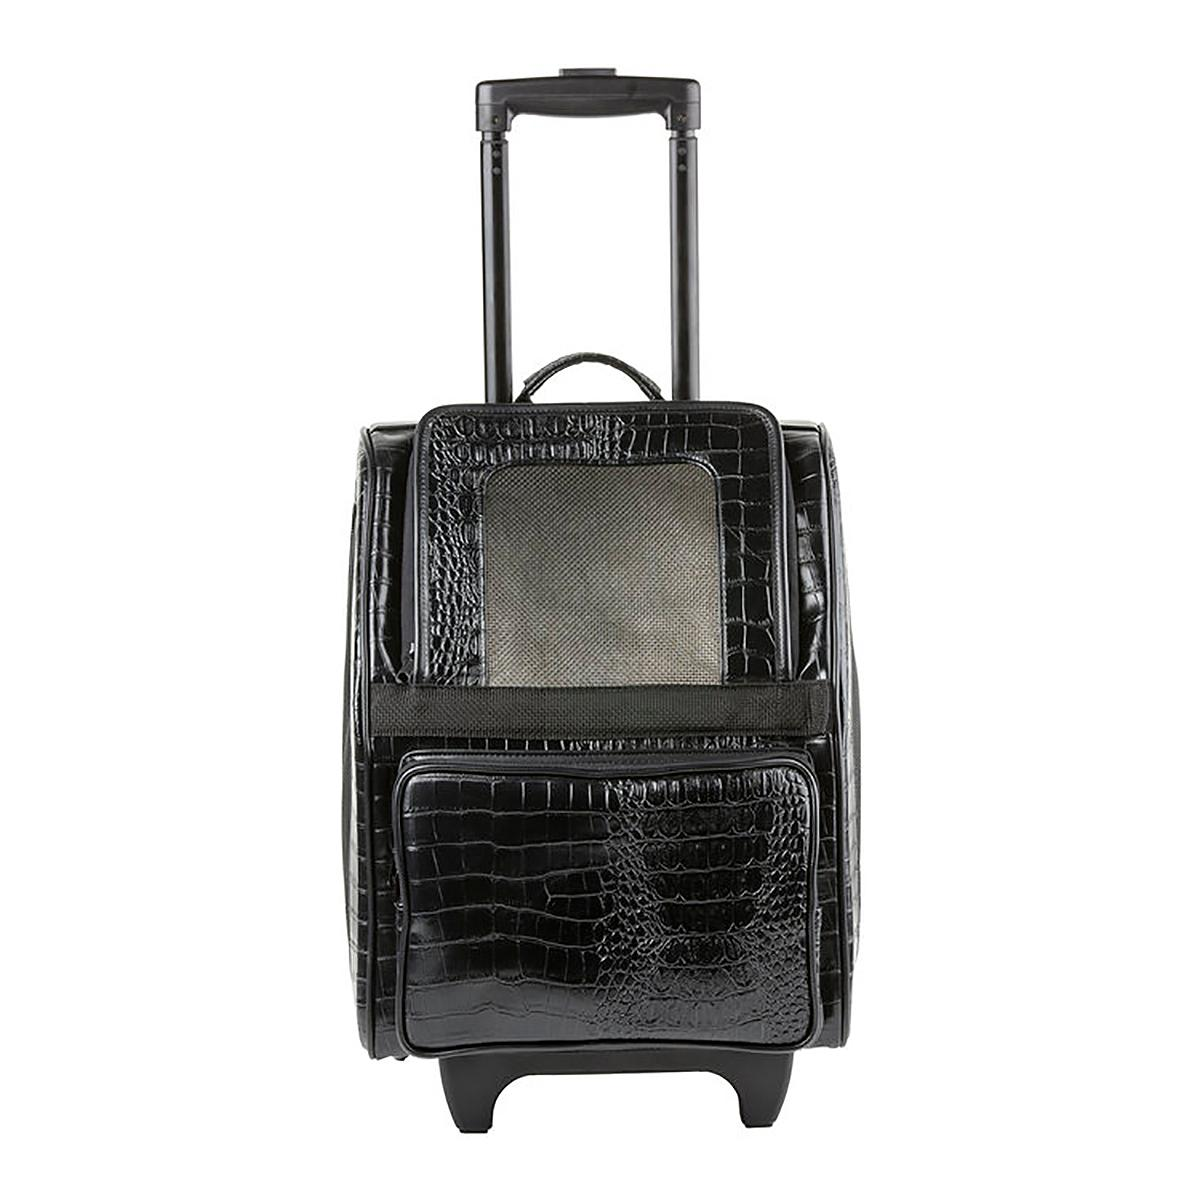 Rio Rolling Dog Backpack Carrier - Black Croco